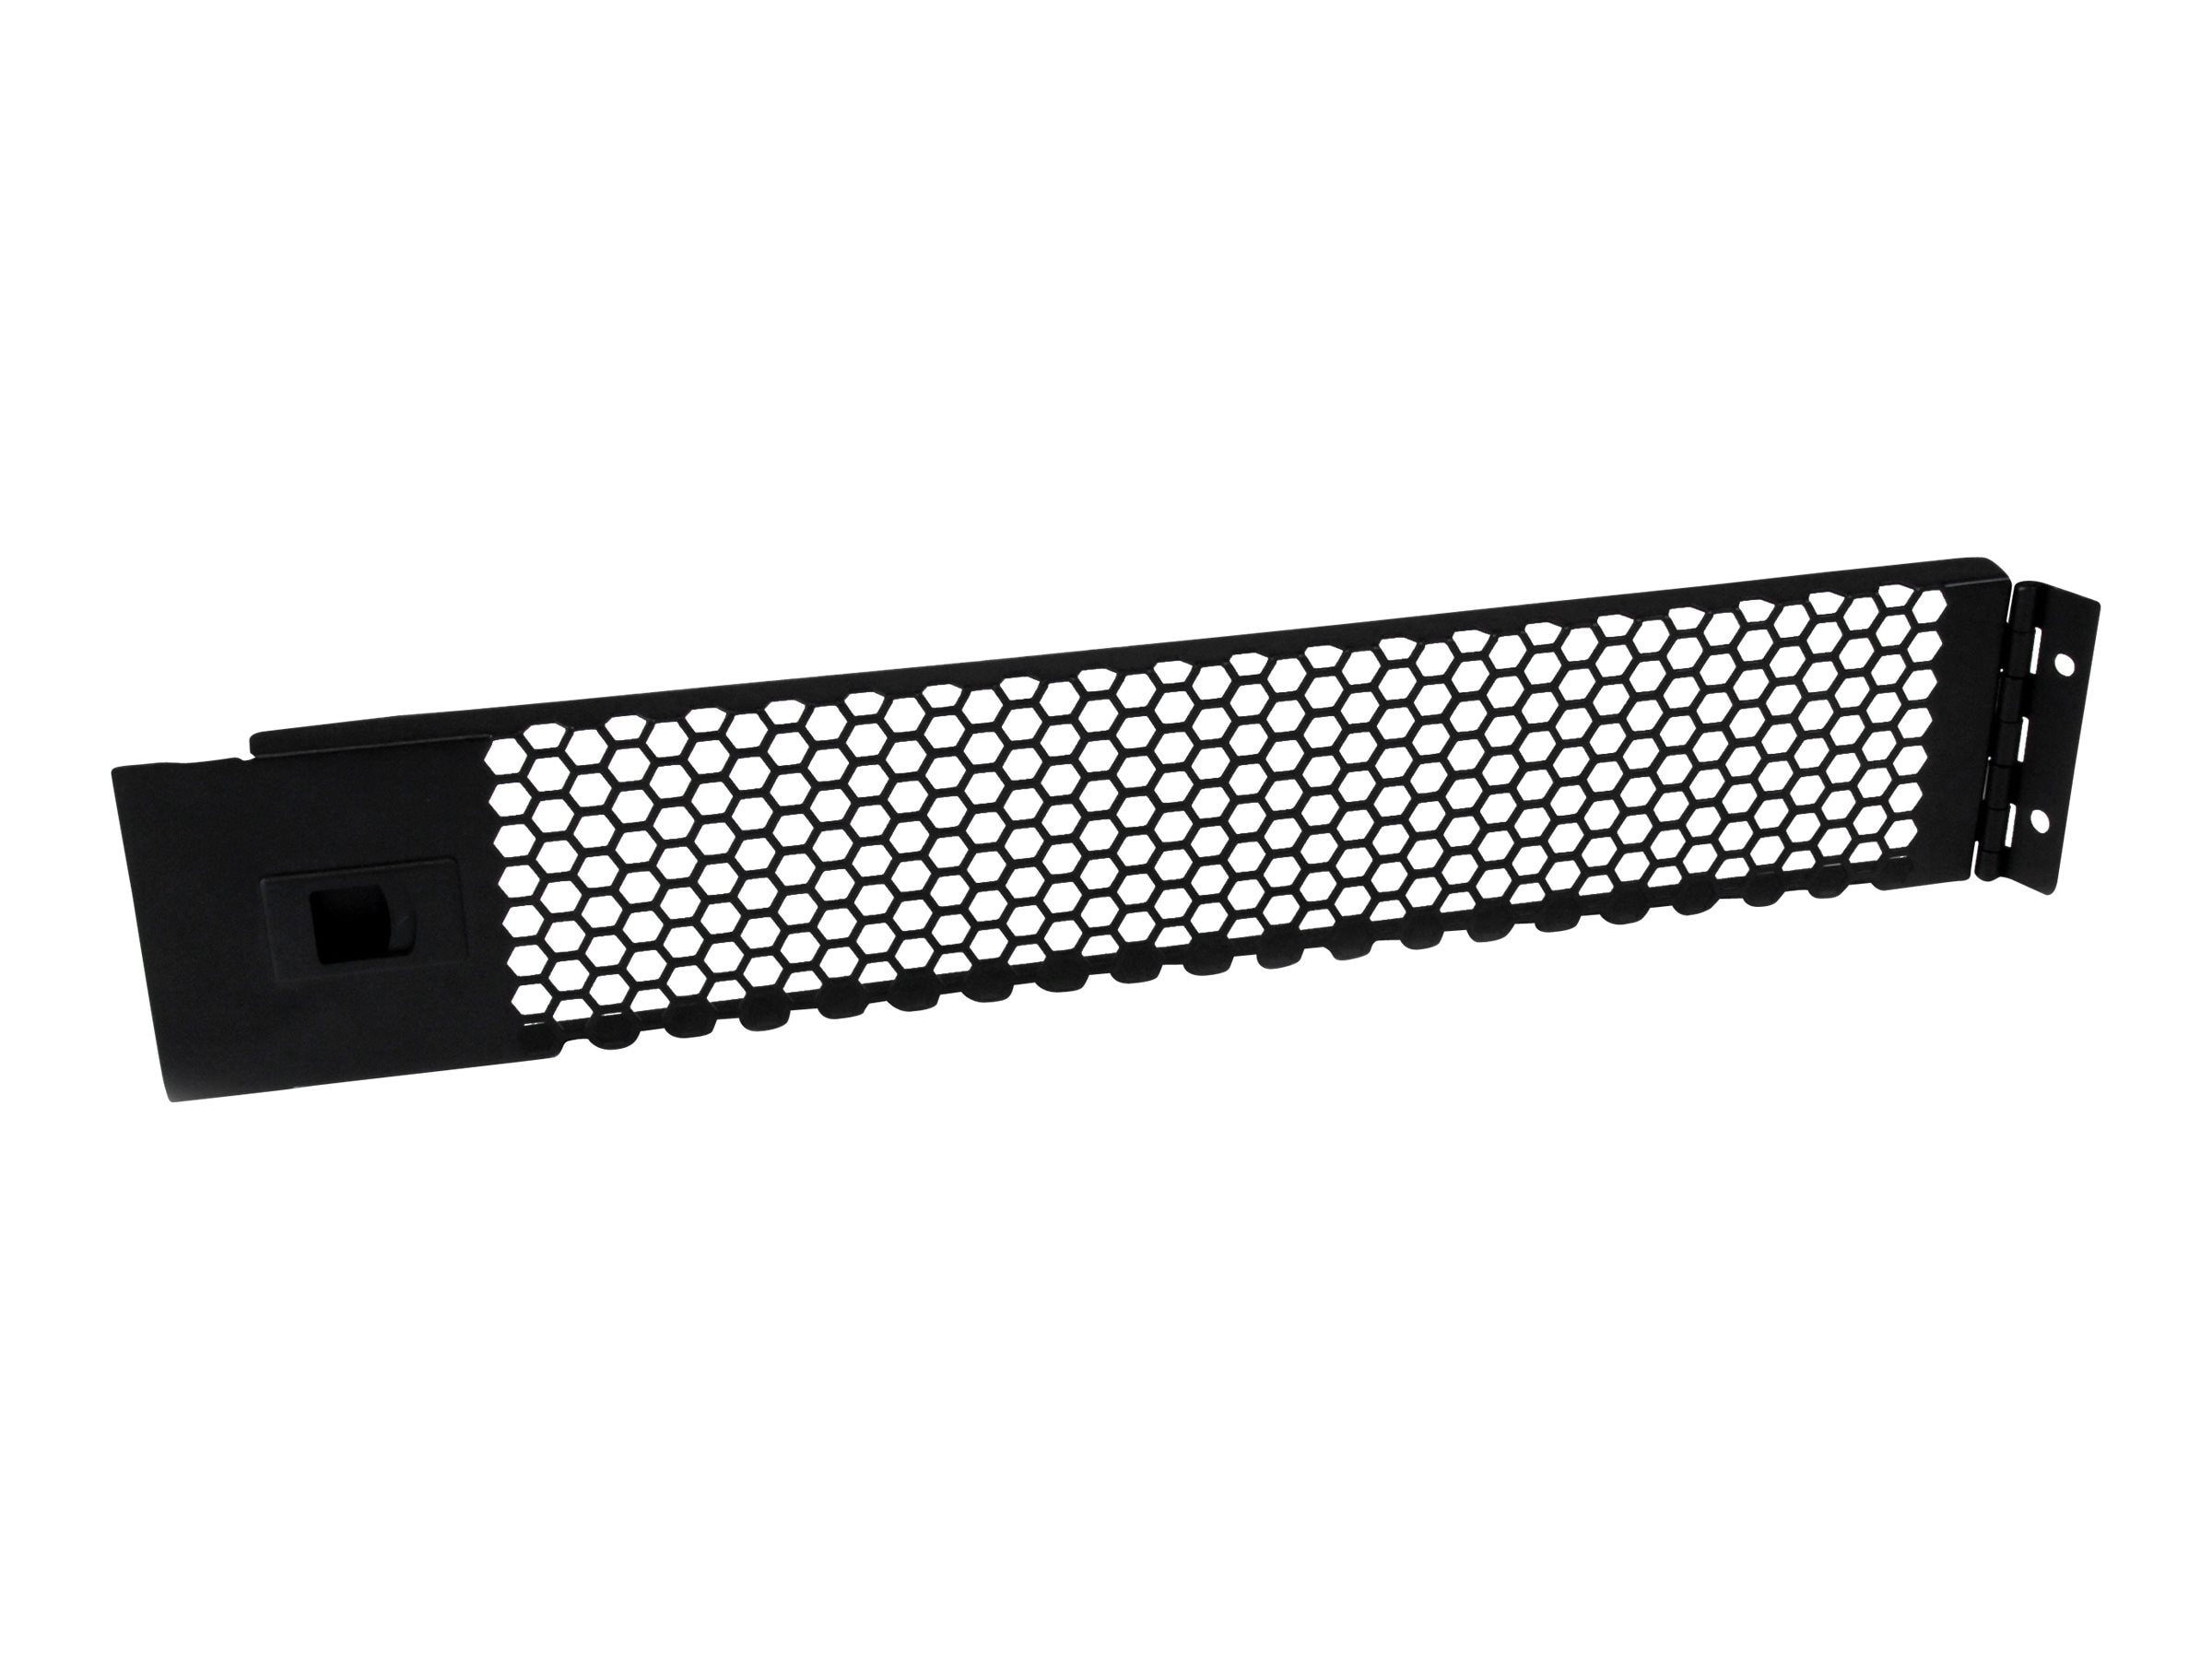 StarTech.com Hinged & Vented Blank Rack Panel, 2U Black, RKPNLHV2U